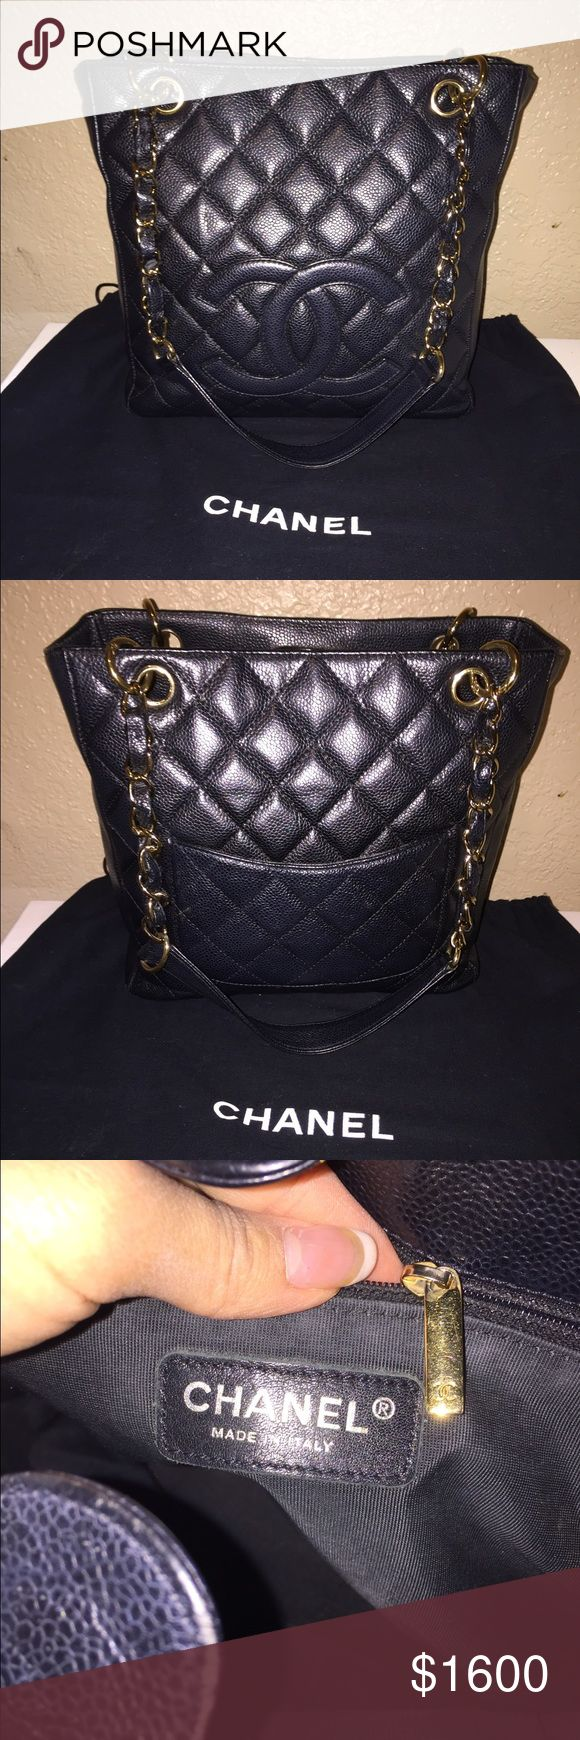 Authentic Chanel Caviar Black Petite Shopping Tote Authentic Chanel Caviar Black Petite Shopping tote. In good pre owned condition with dust bag included. Gold hardware. No stains, tears or odors. Normal wear around the bag. Chanel prices constantly increase so they retain their value and you would be investing in this bag and not losing $! CHANEL Bags Totes